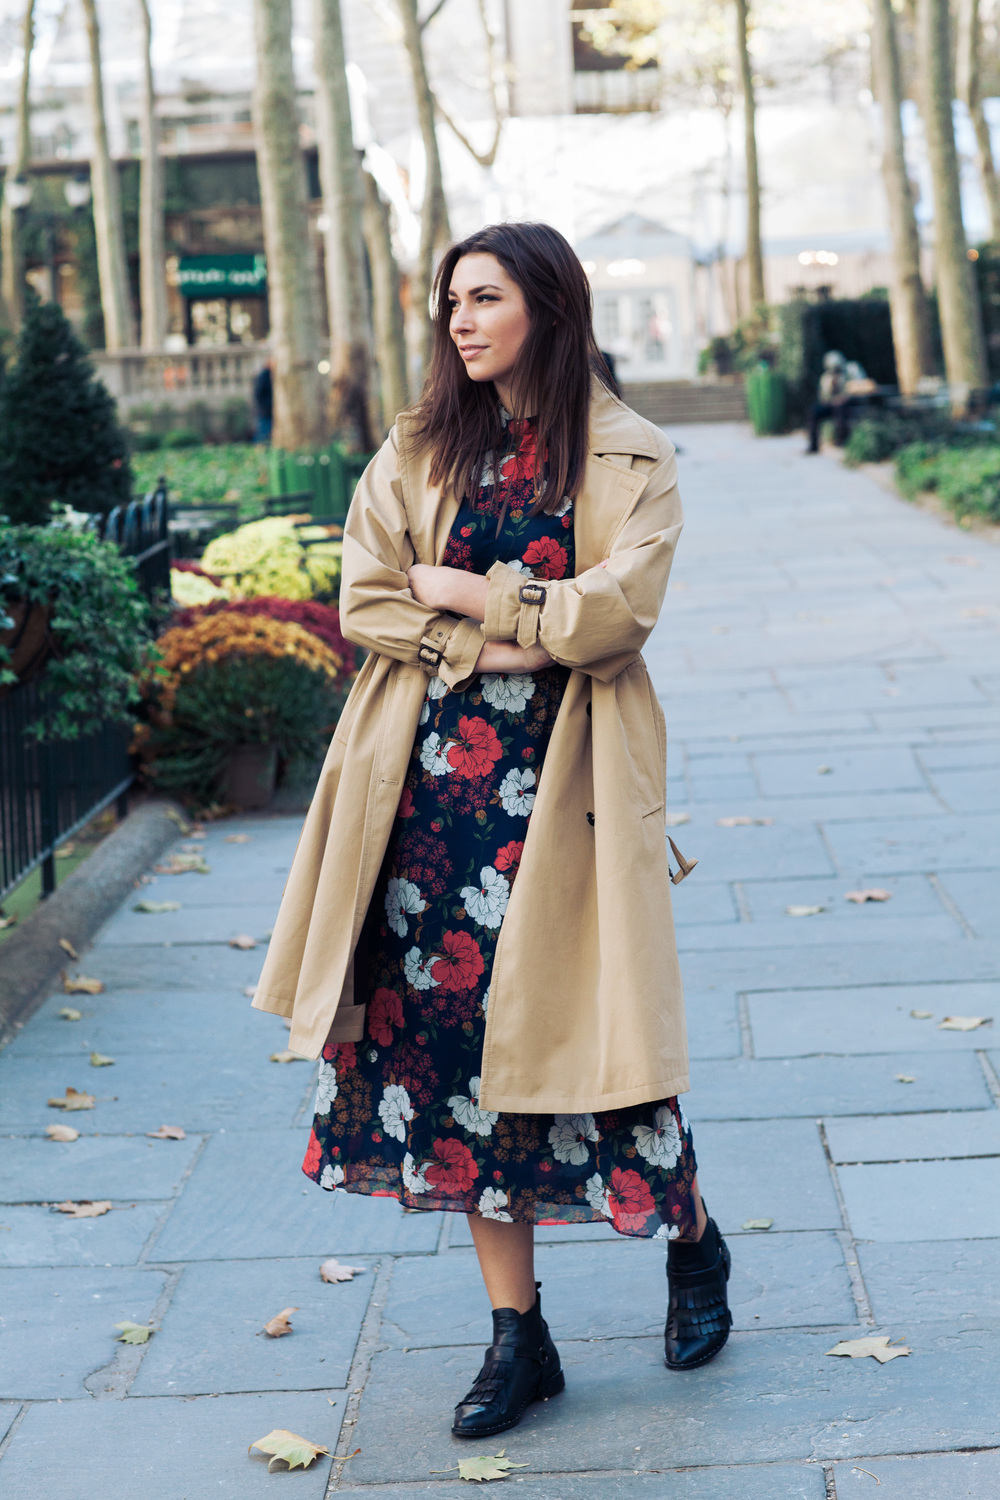 Paul Smith Trench, Zara dress, Freda Salvador Booties in Bryant Park